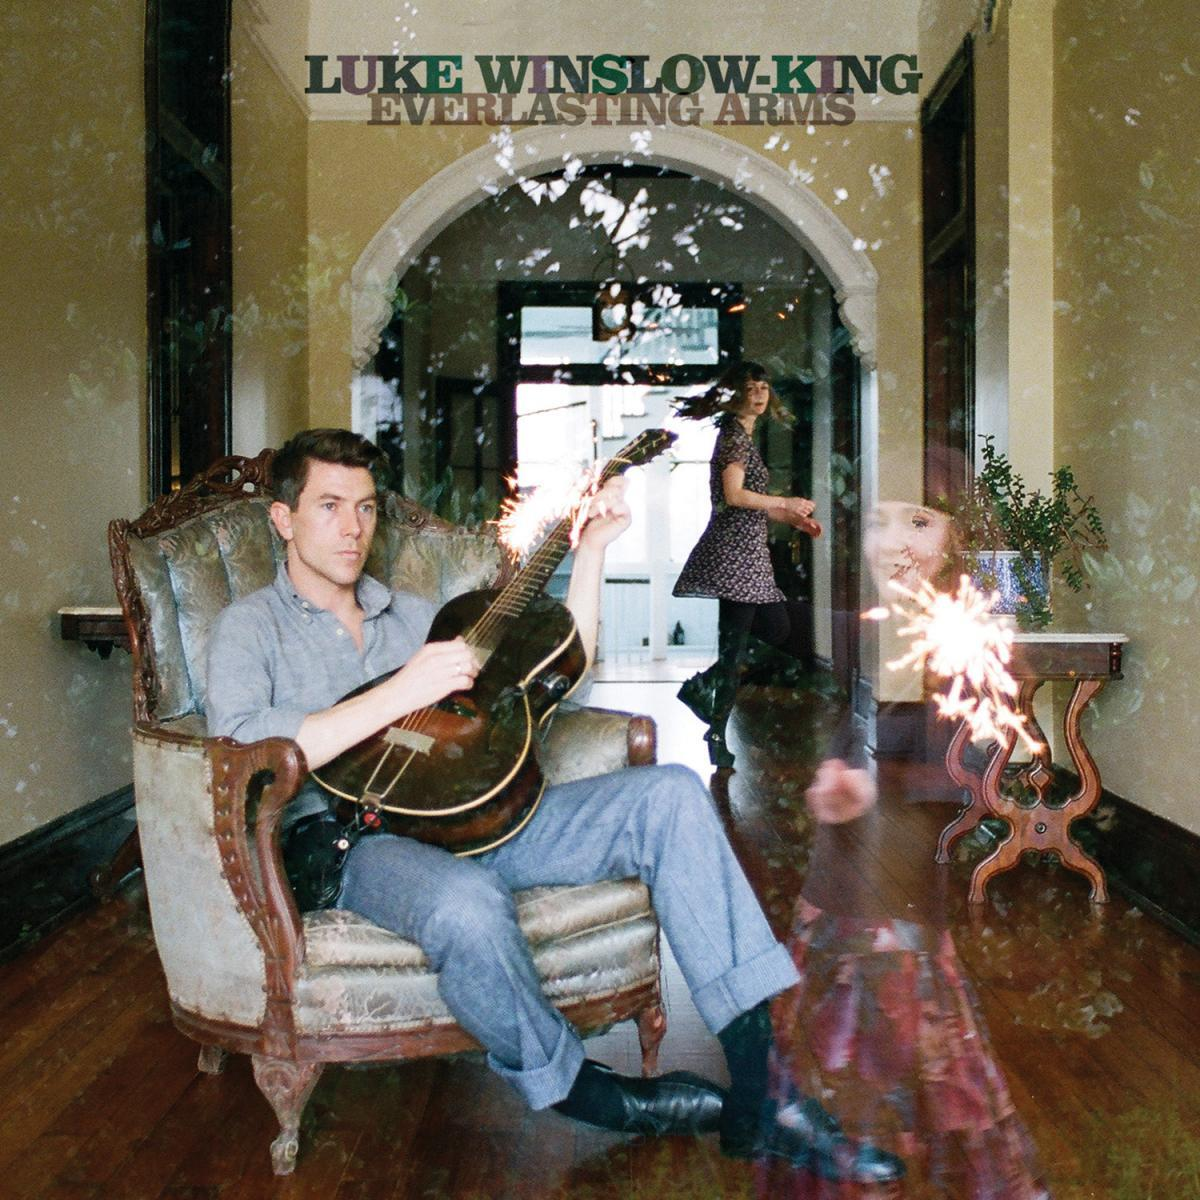 BLDH216 Bloodshot  Luke Winslow-King Everlasting Arms (LP)